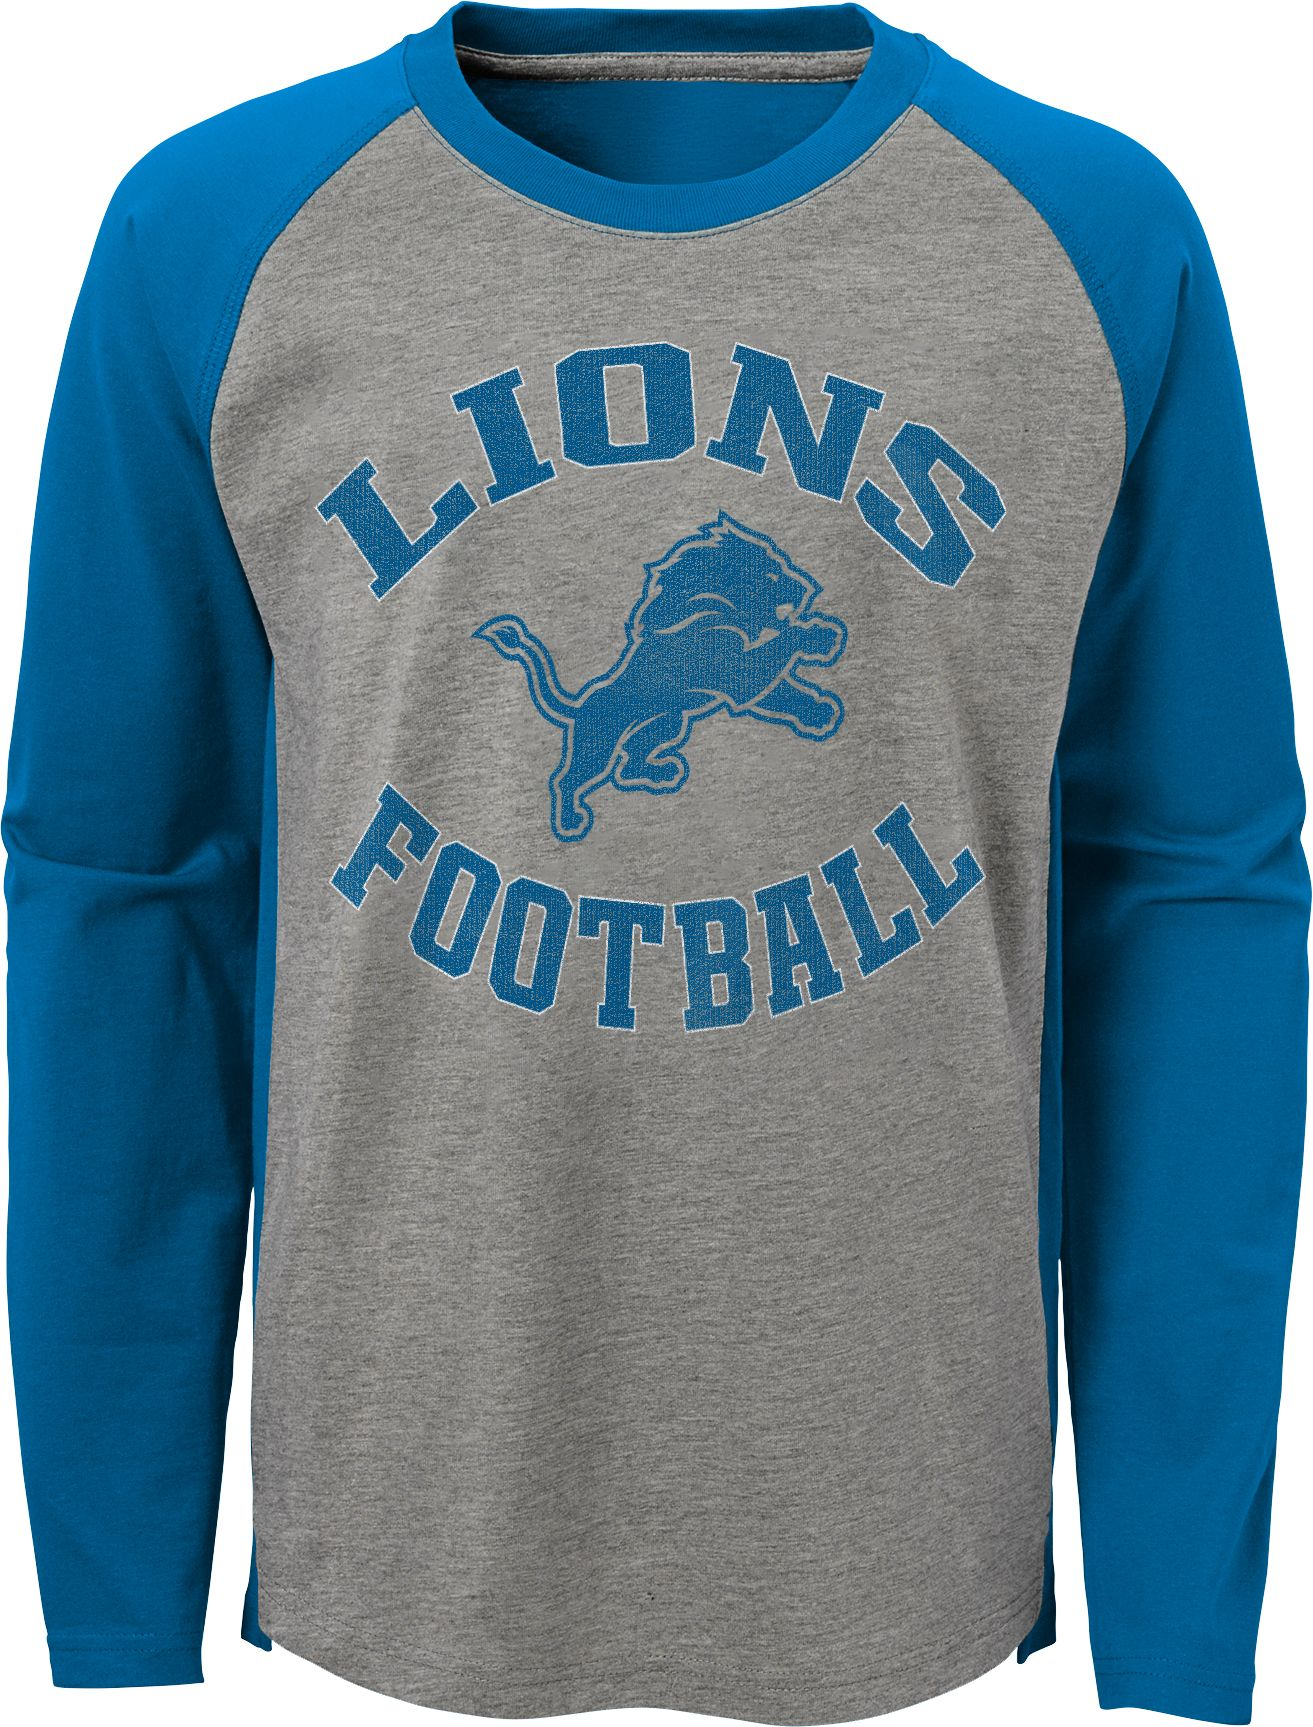 finest selection eca8b 5852a detroit lions team apparel